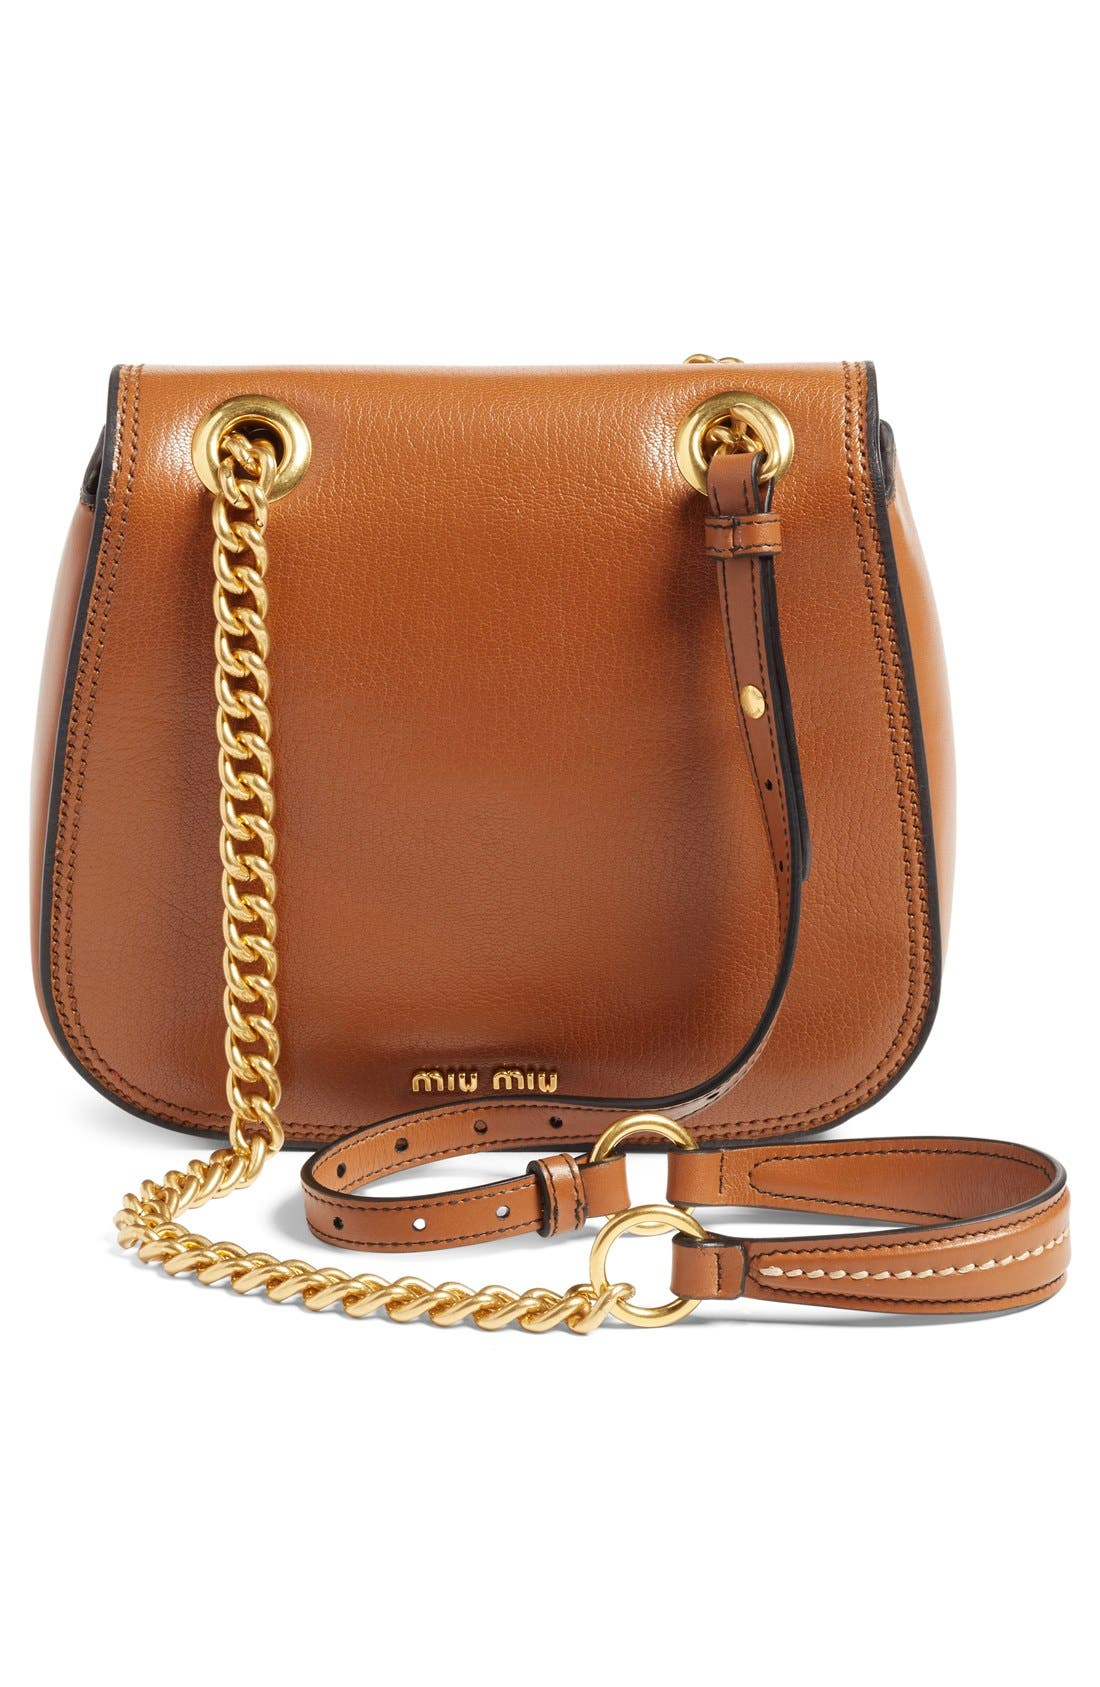 'Dahlia' Goatskin Leather Saddle Bag,                             Alternate thumbnail 6, color,